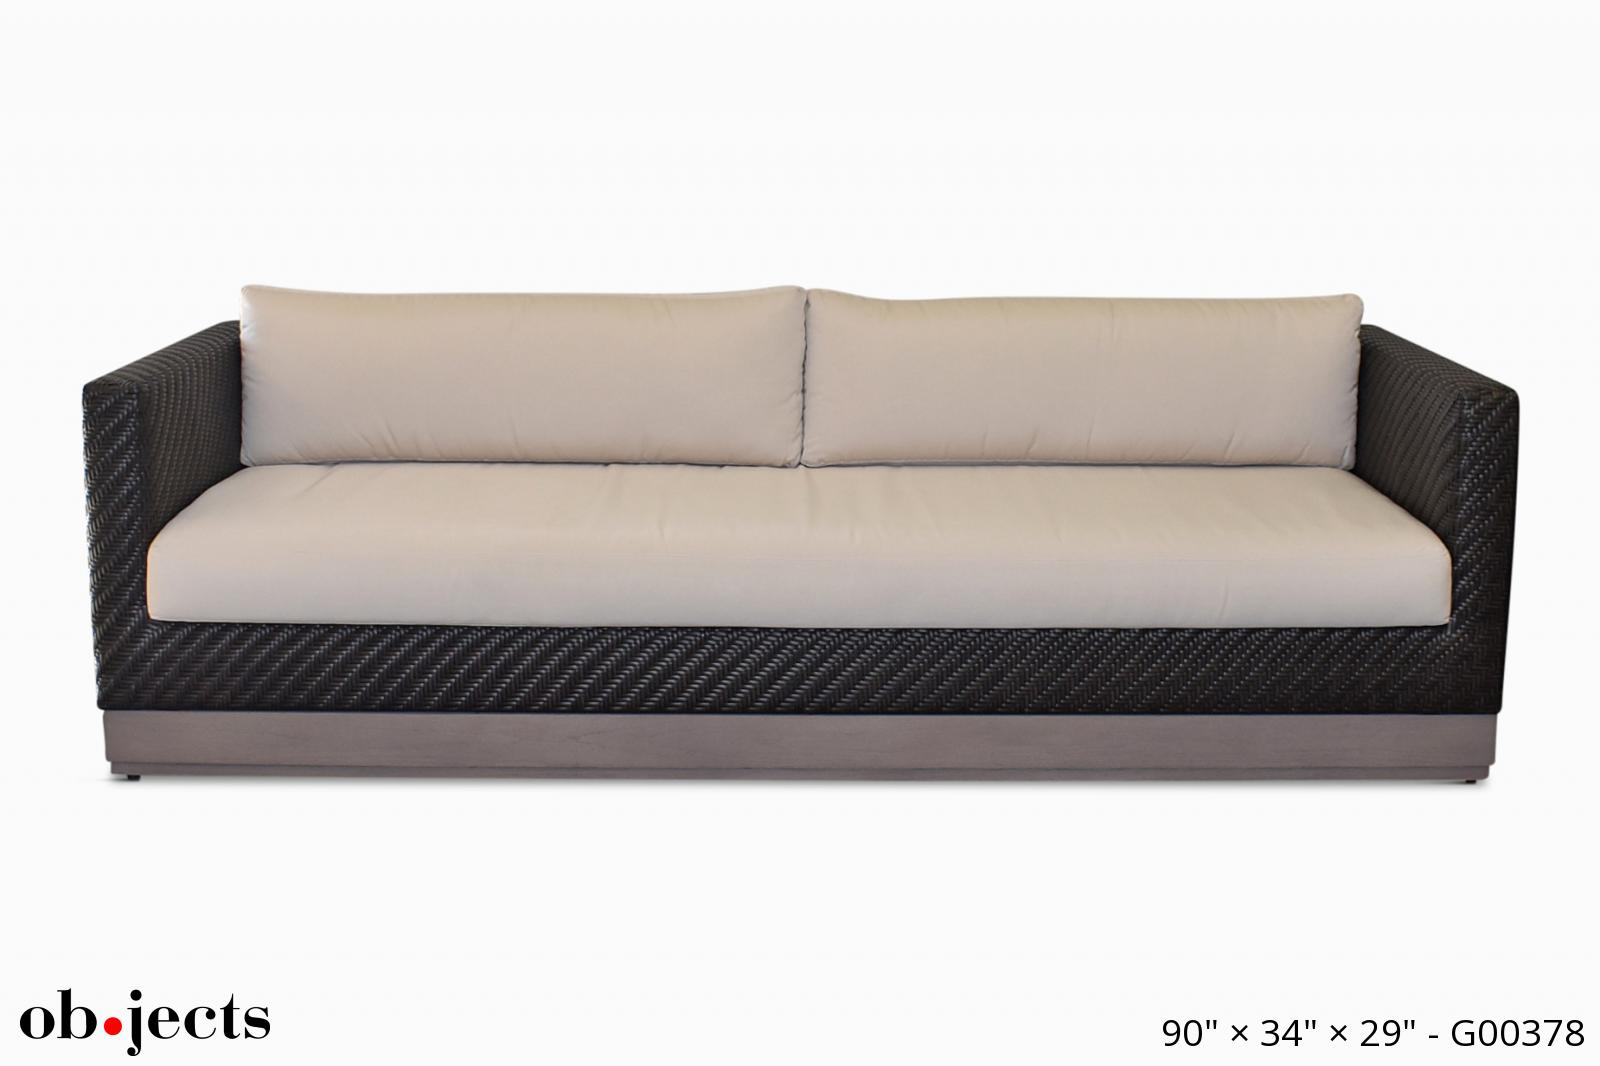 Swell Sofa Indoor Outdoor Brown Synthetic W Off White Cushions Short Links Chair Design For Home Short Linksinfo